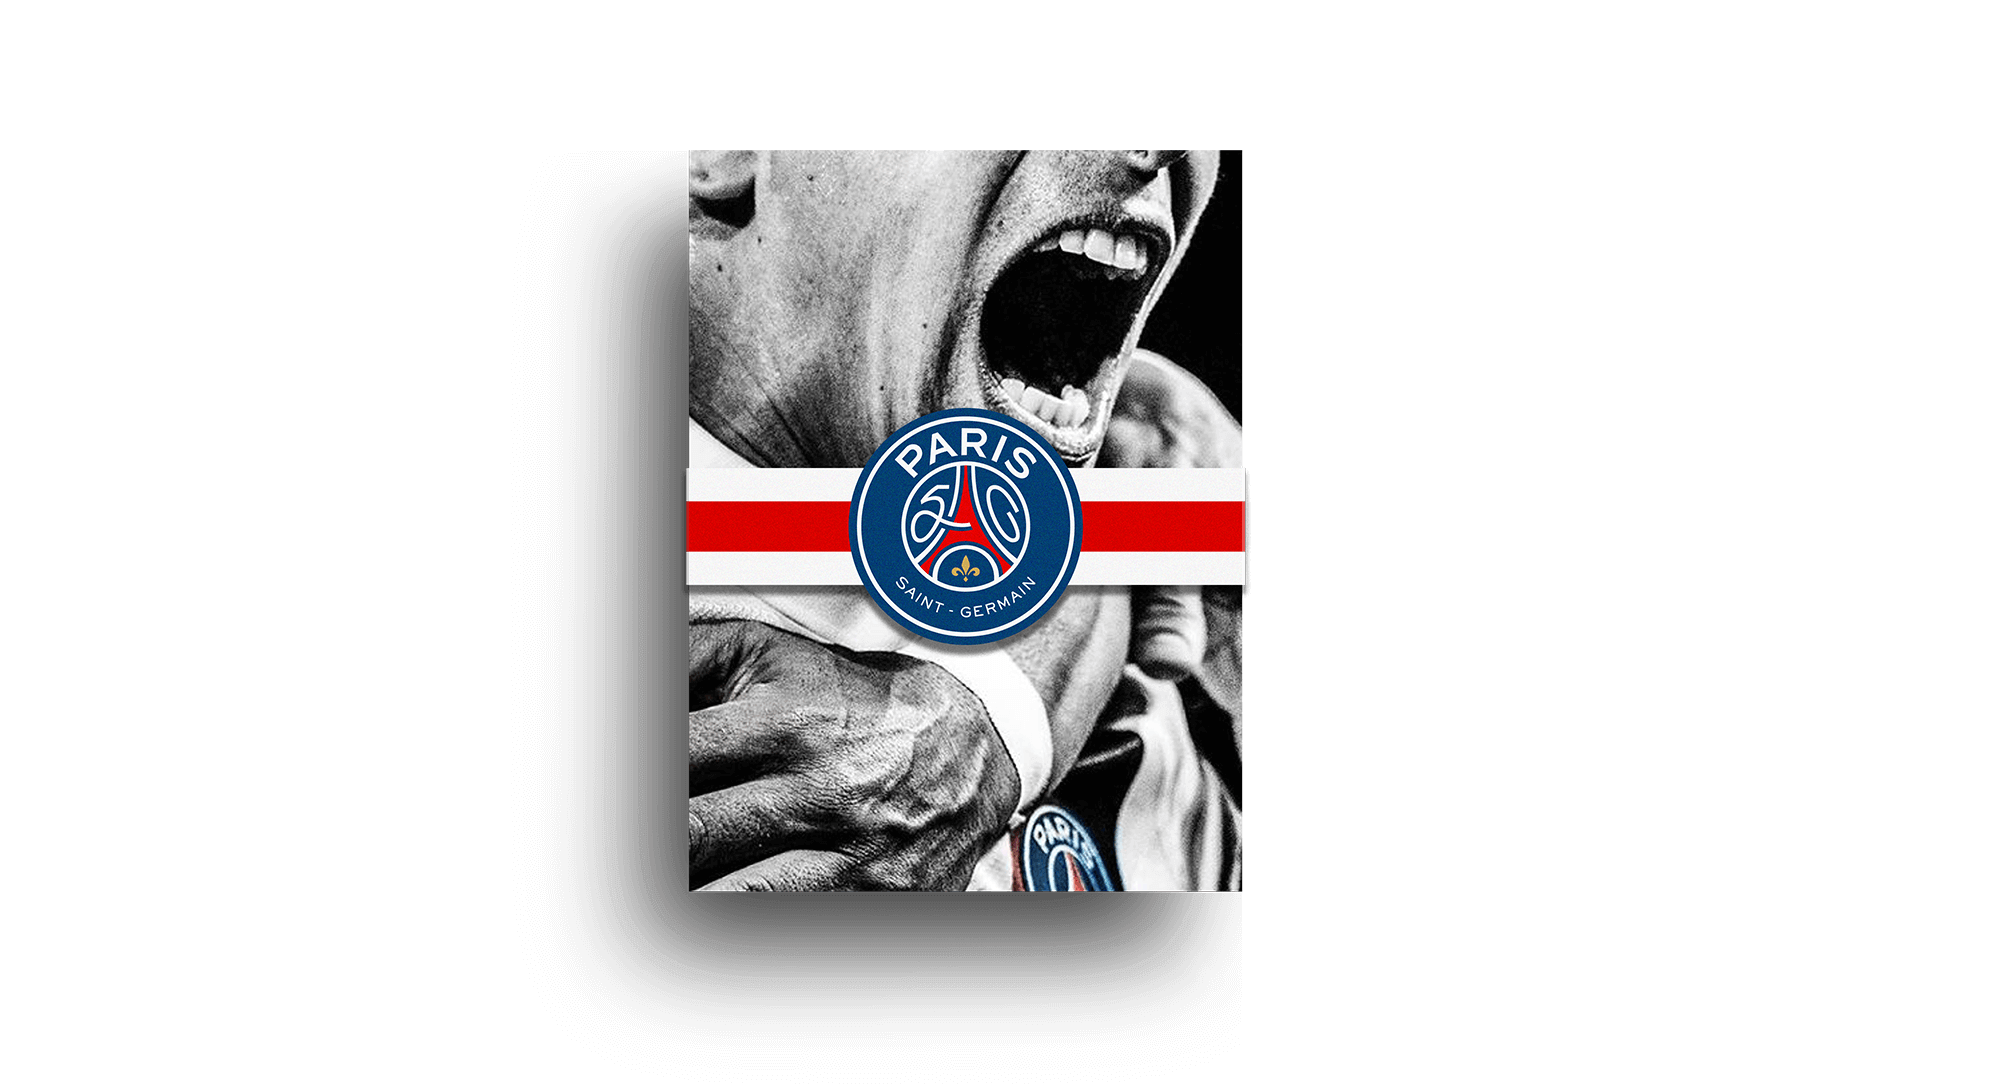 Psg Greeting Card 2020 In The Pool Studio